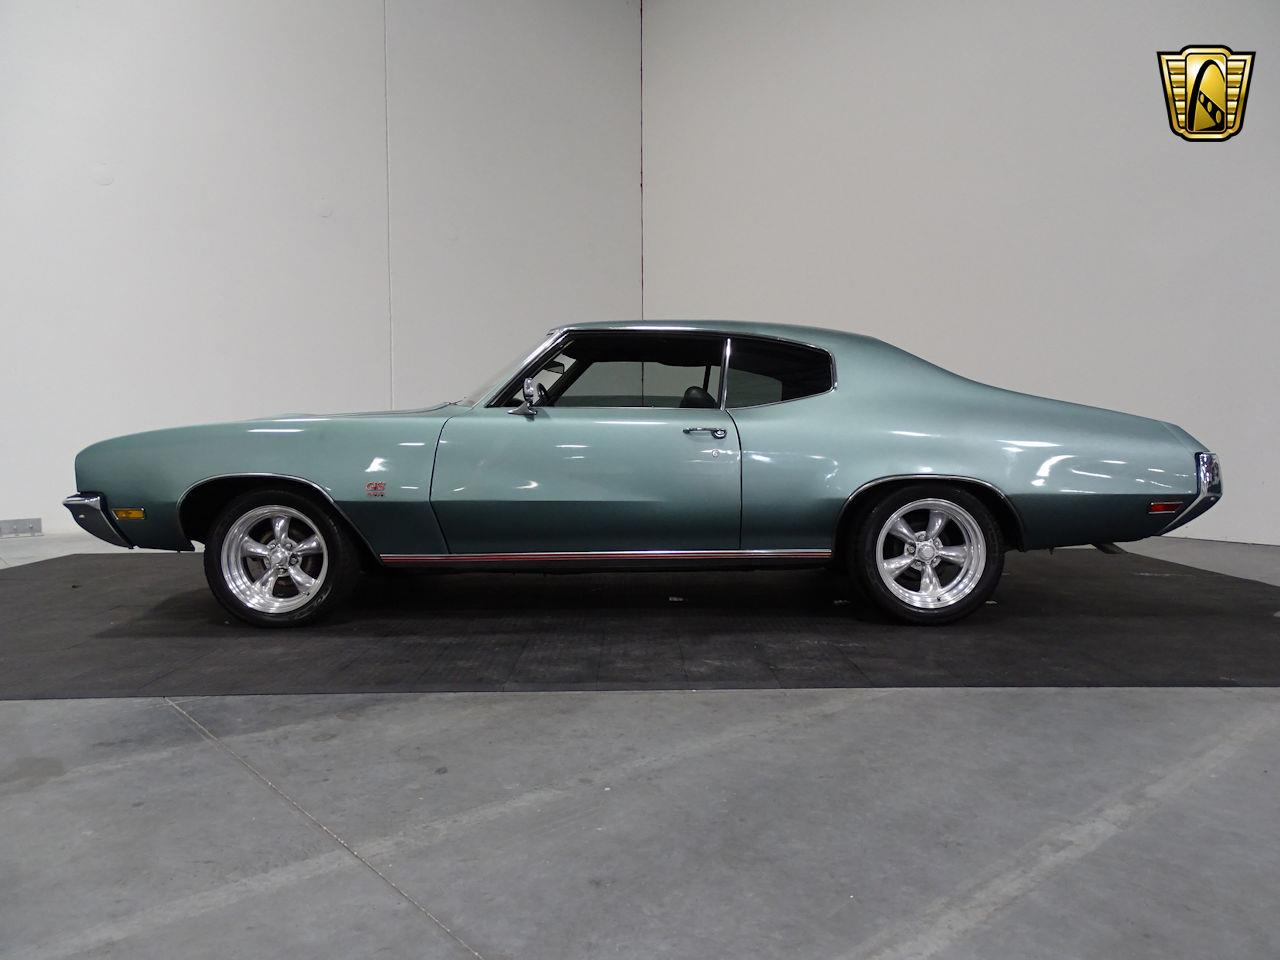 Large Picture of Classic 1971 Buick Skylark located in Houston Texas - $19,995.00 Offered by Gateway Classic Cars - Houston - MBGI